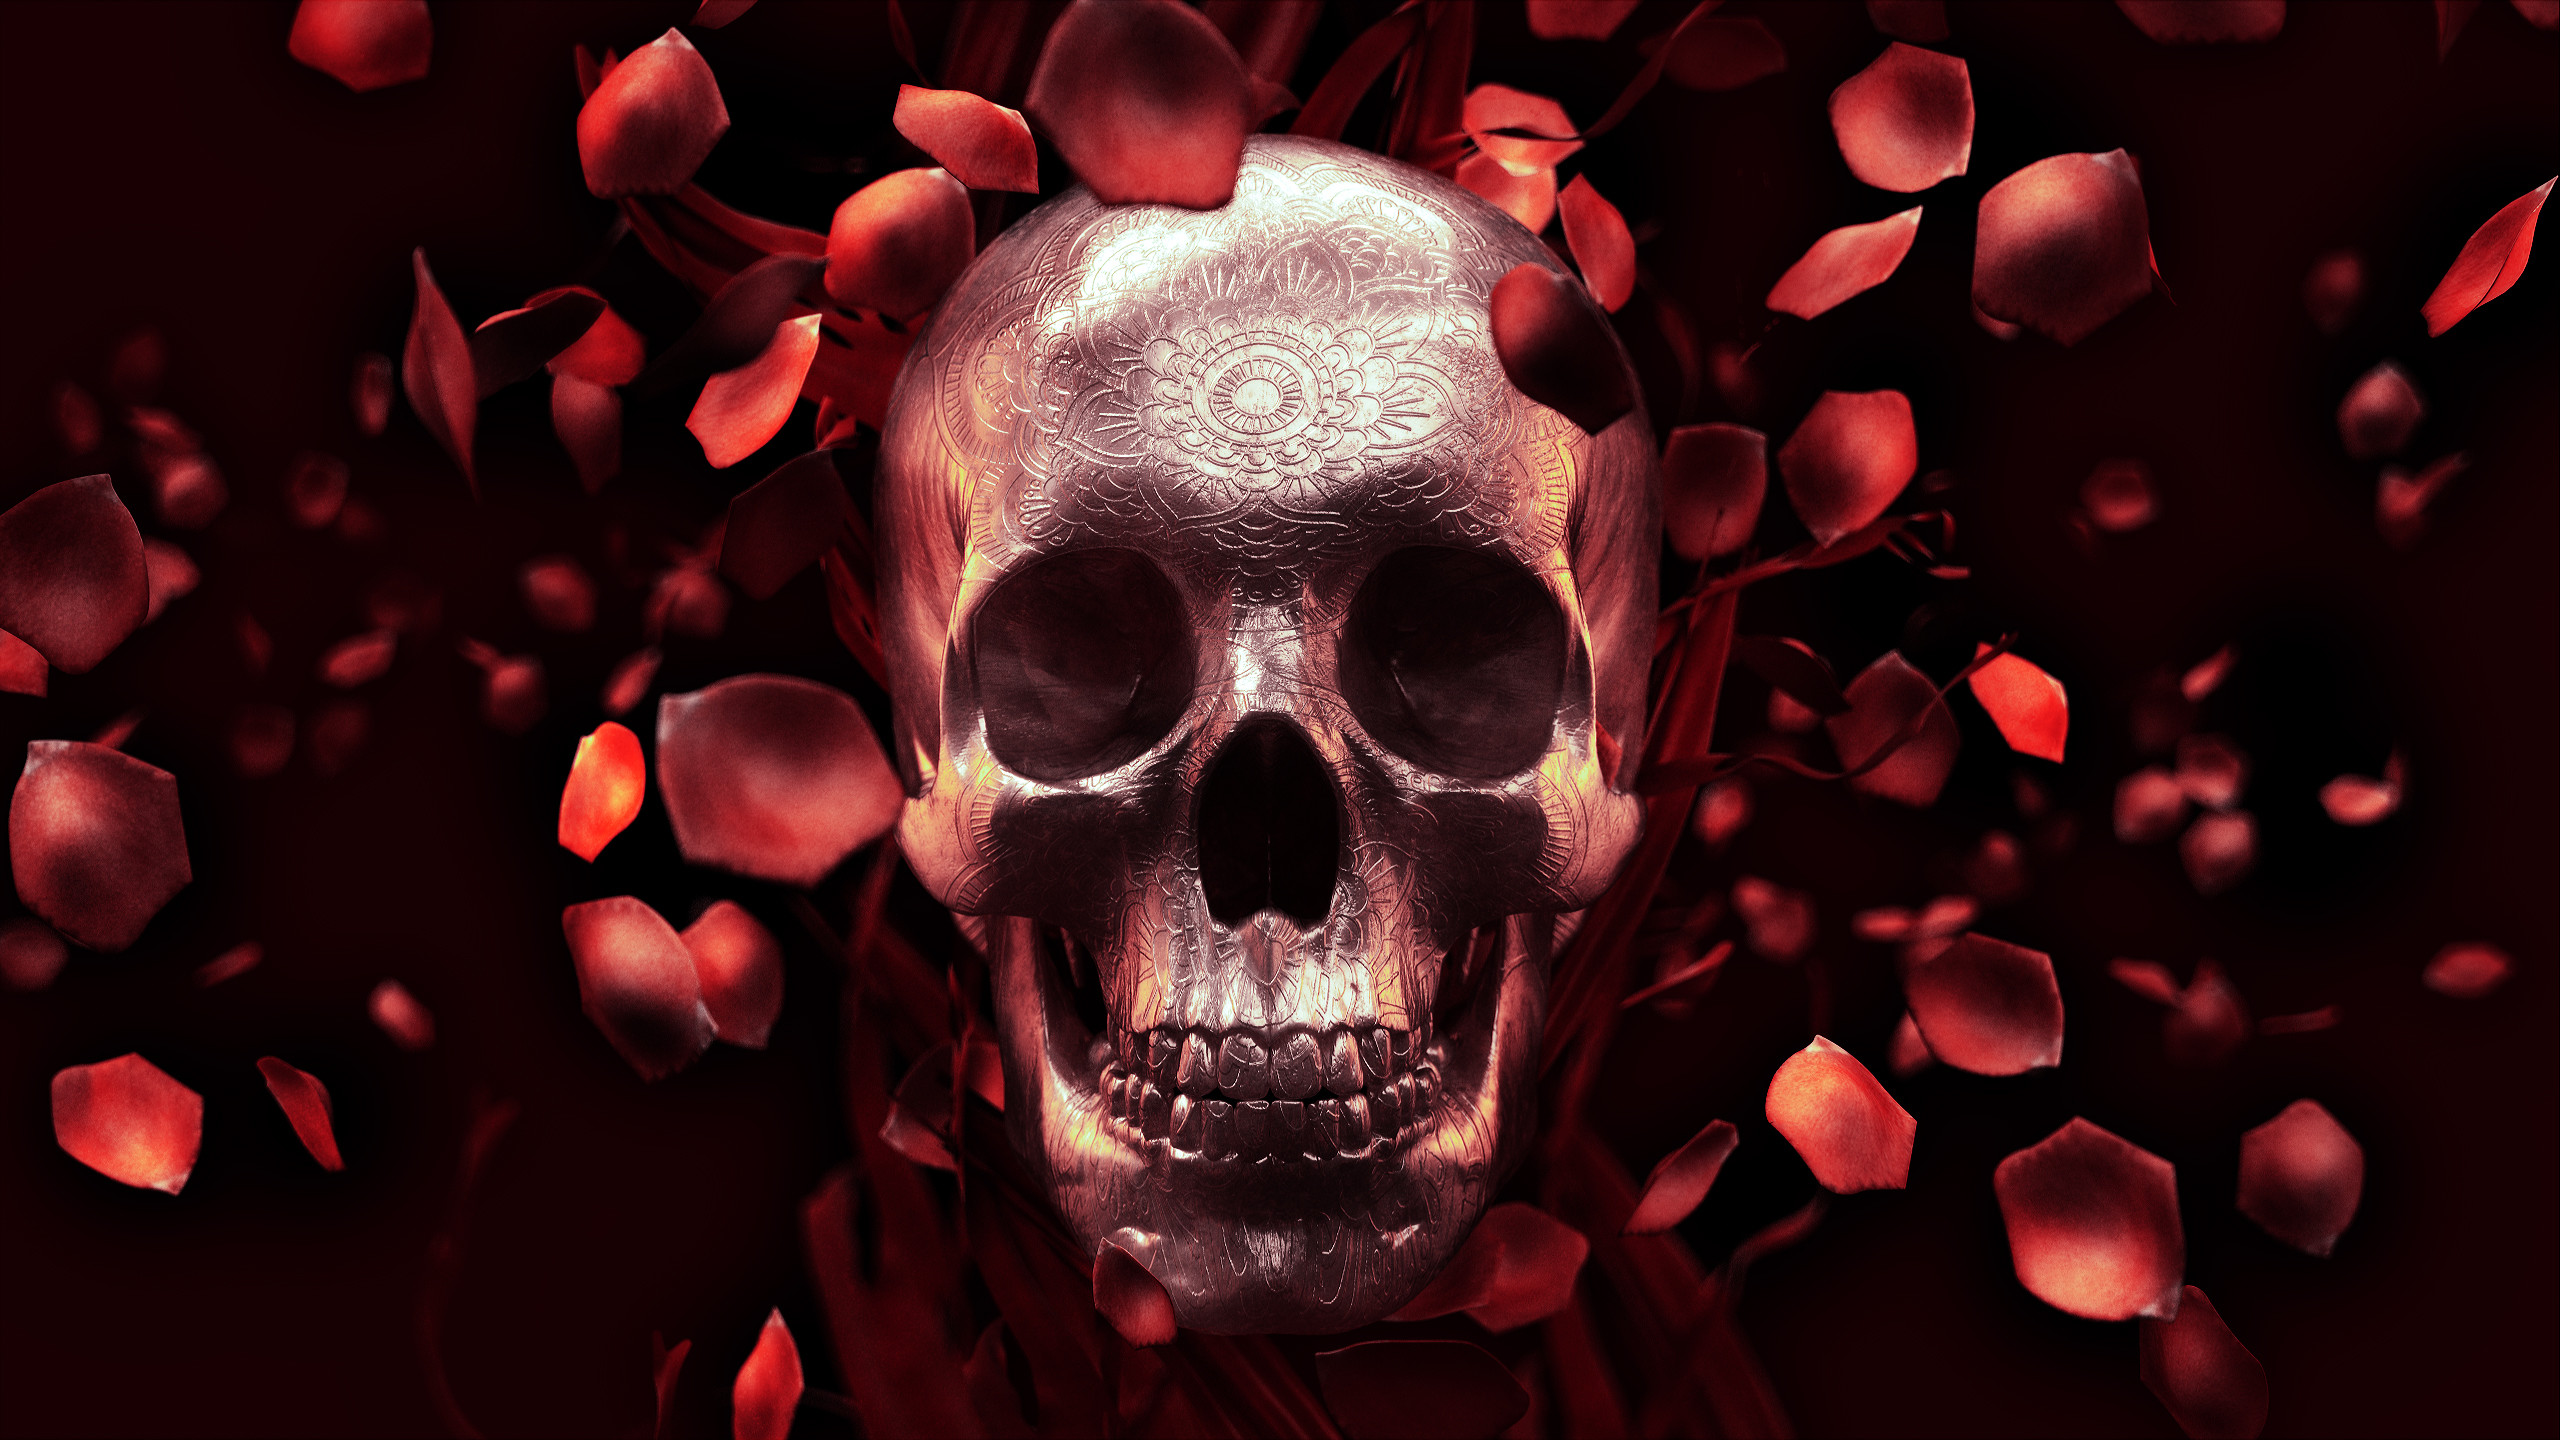 Skull And Roses Wallpaper High Quality Resolution #901 • Other at .